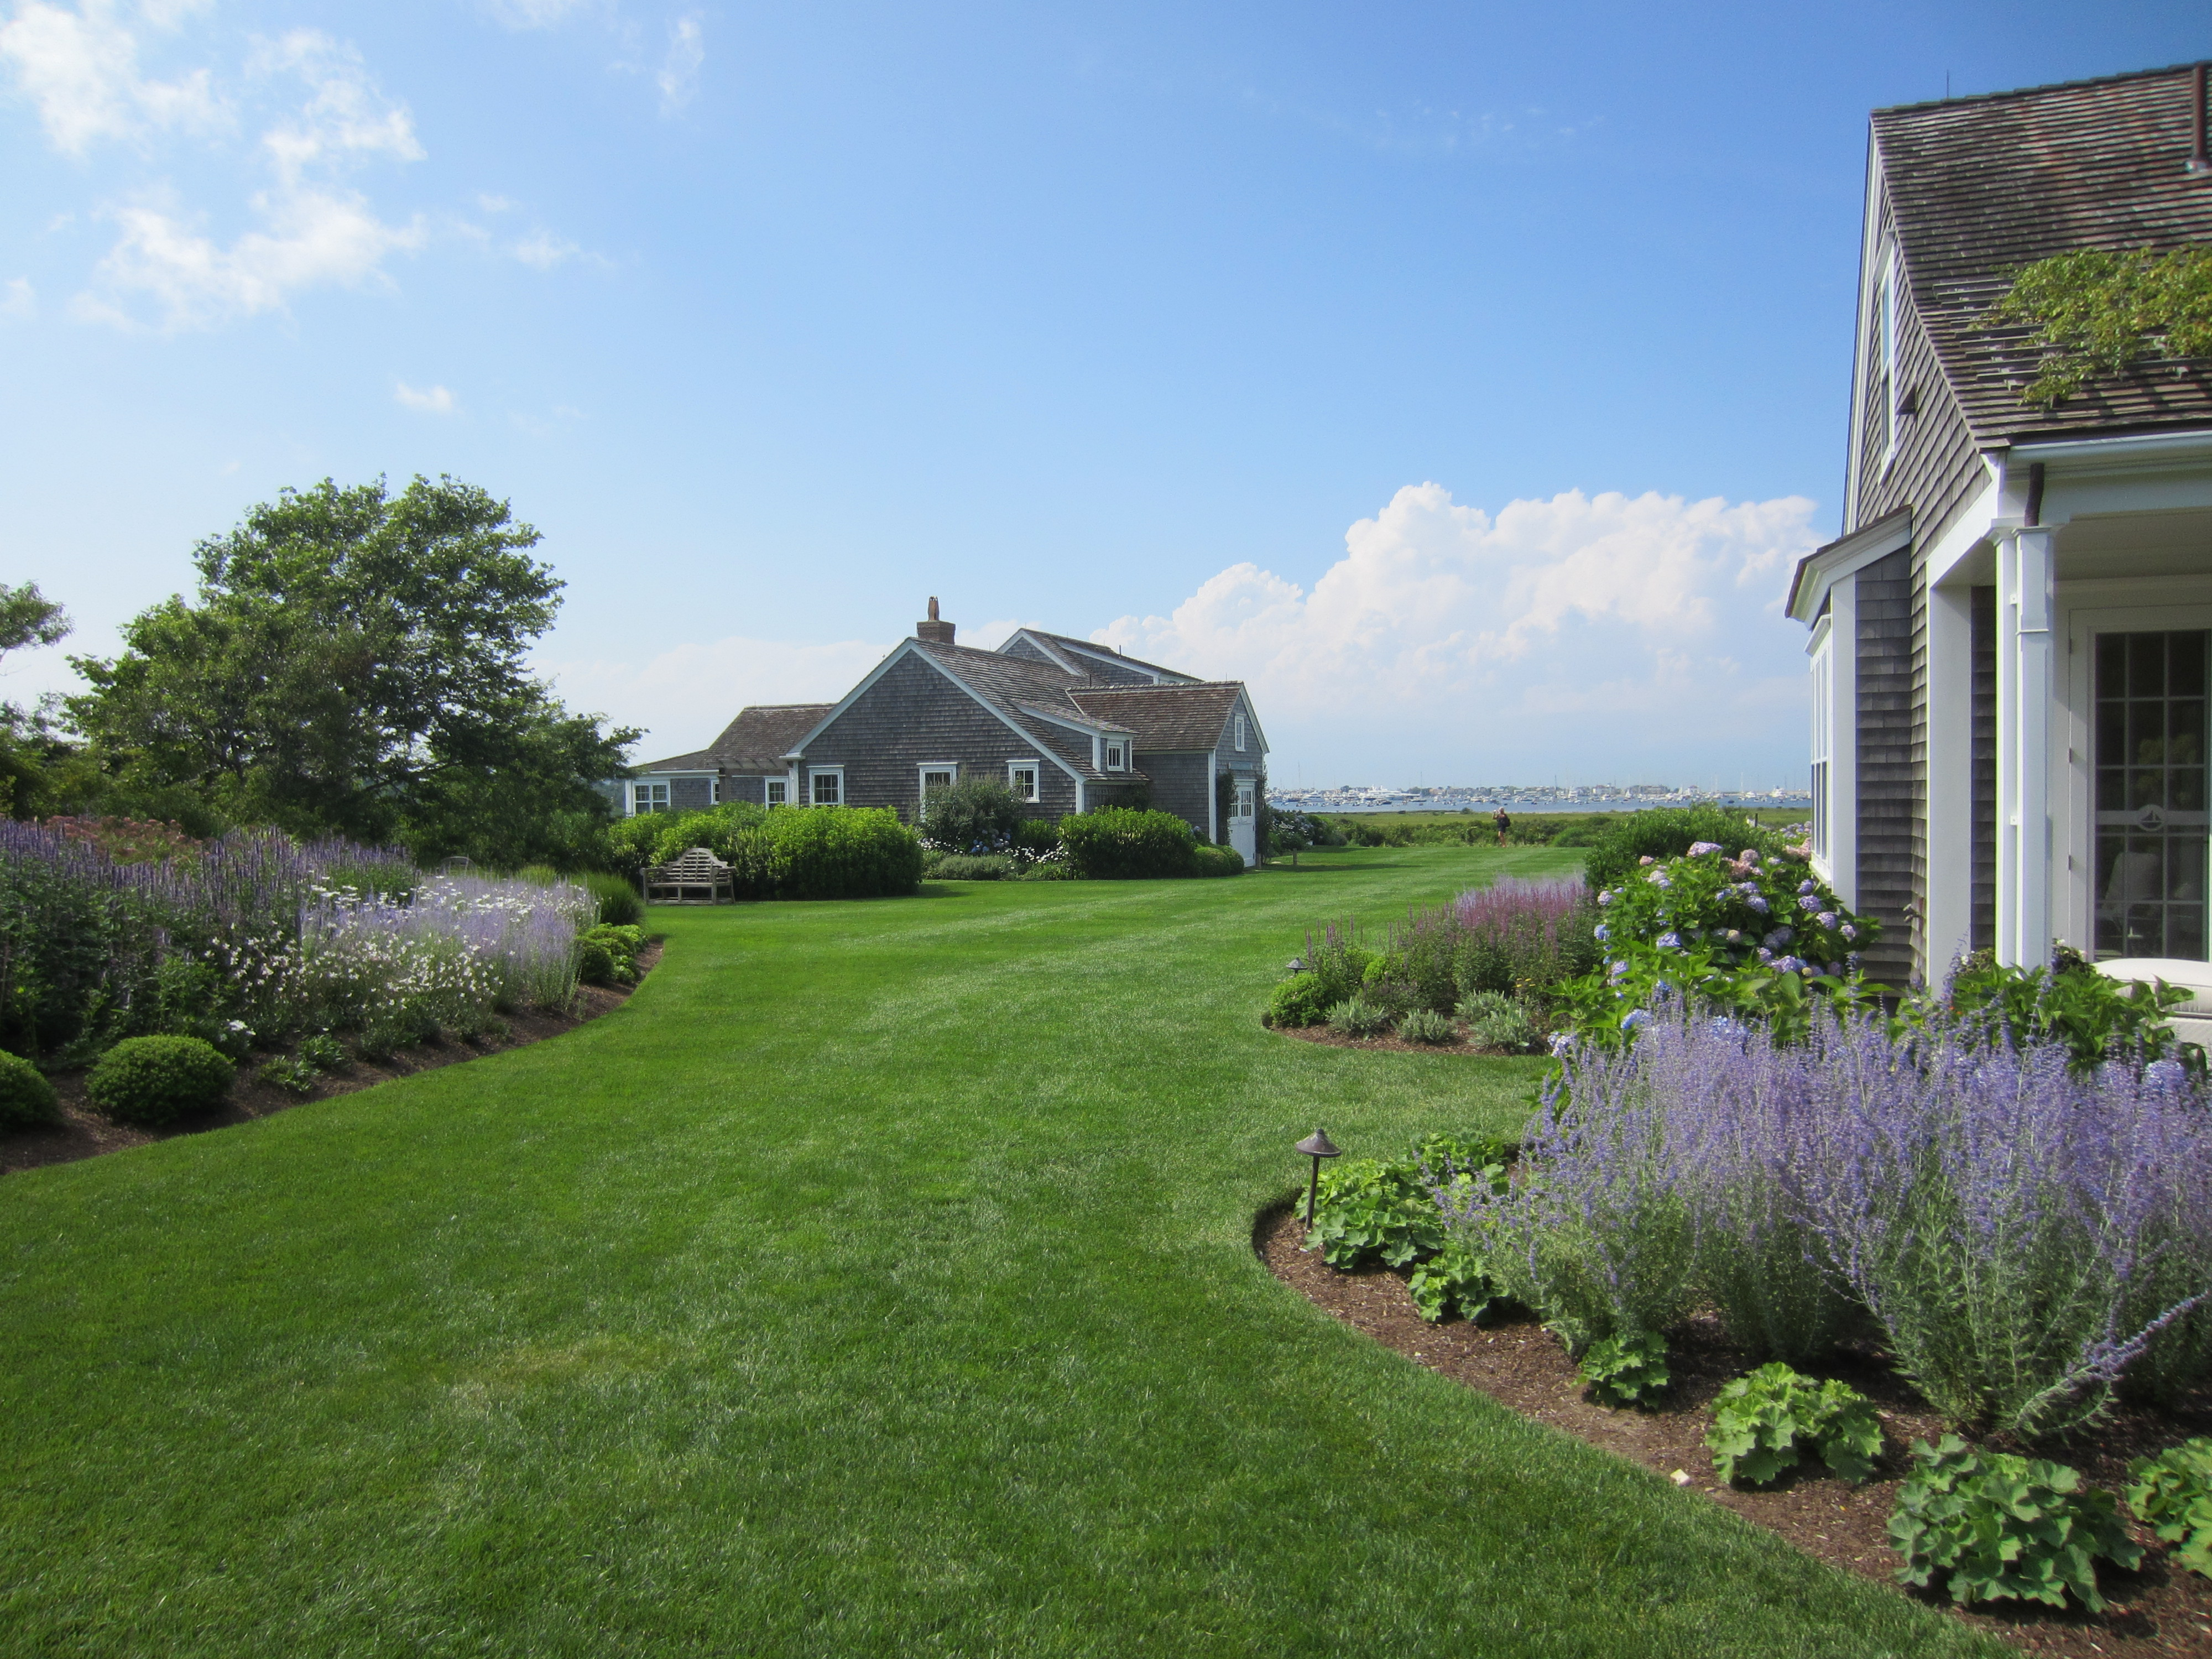 Nantucket island annual house and garden tour atlantic for Real estate nantucket island